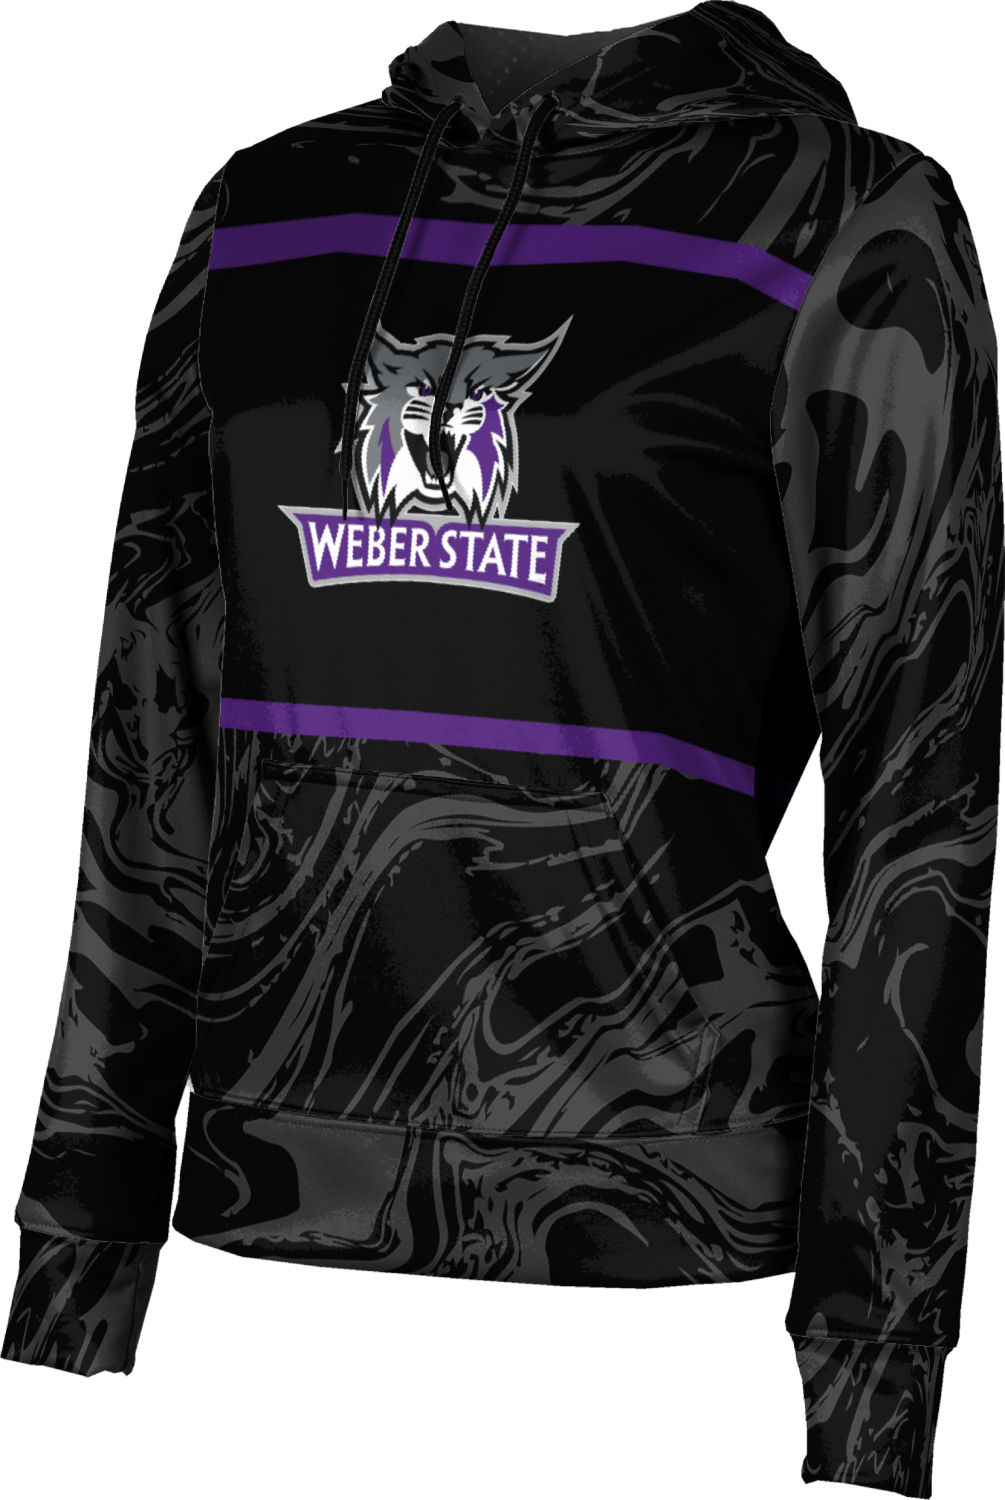 Weber State University Girls Pullover Hoodie Drip School Spirit Sweatshirt